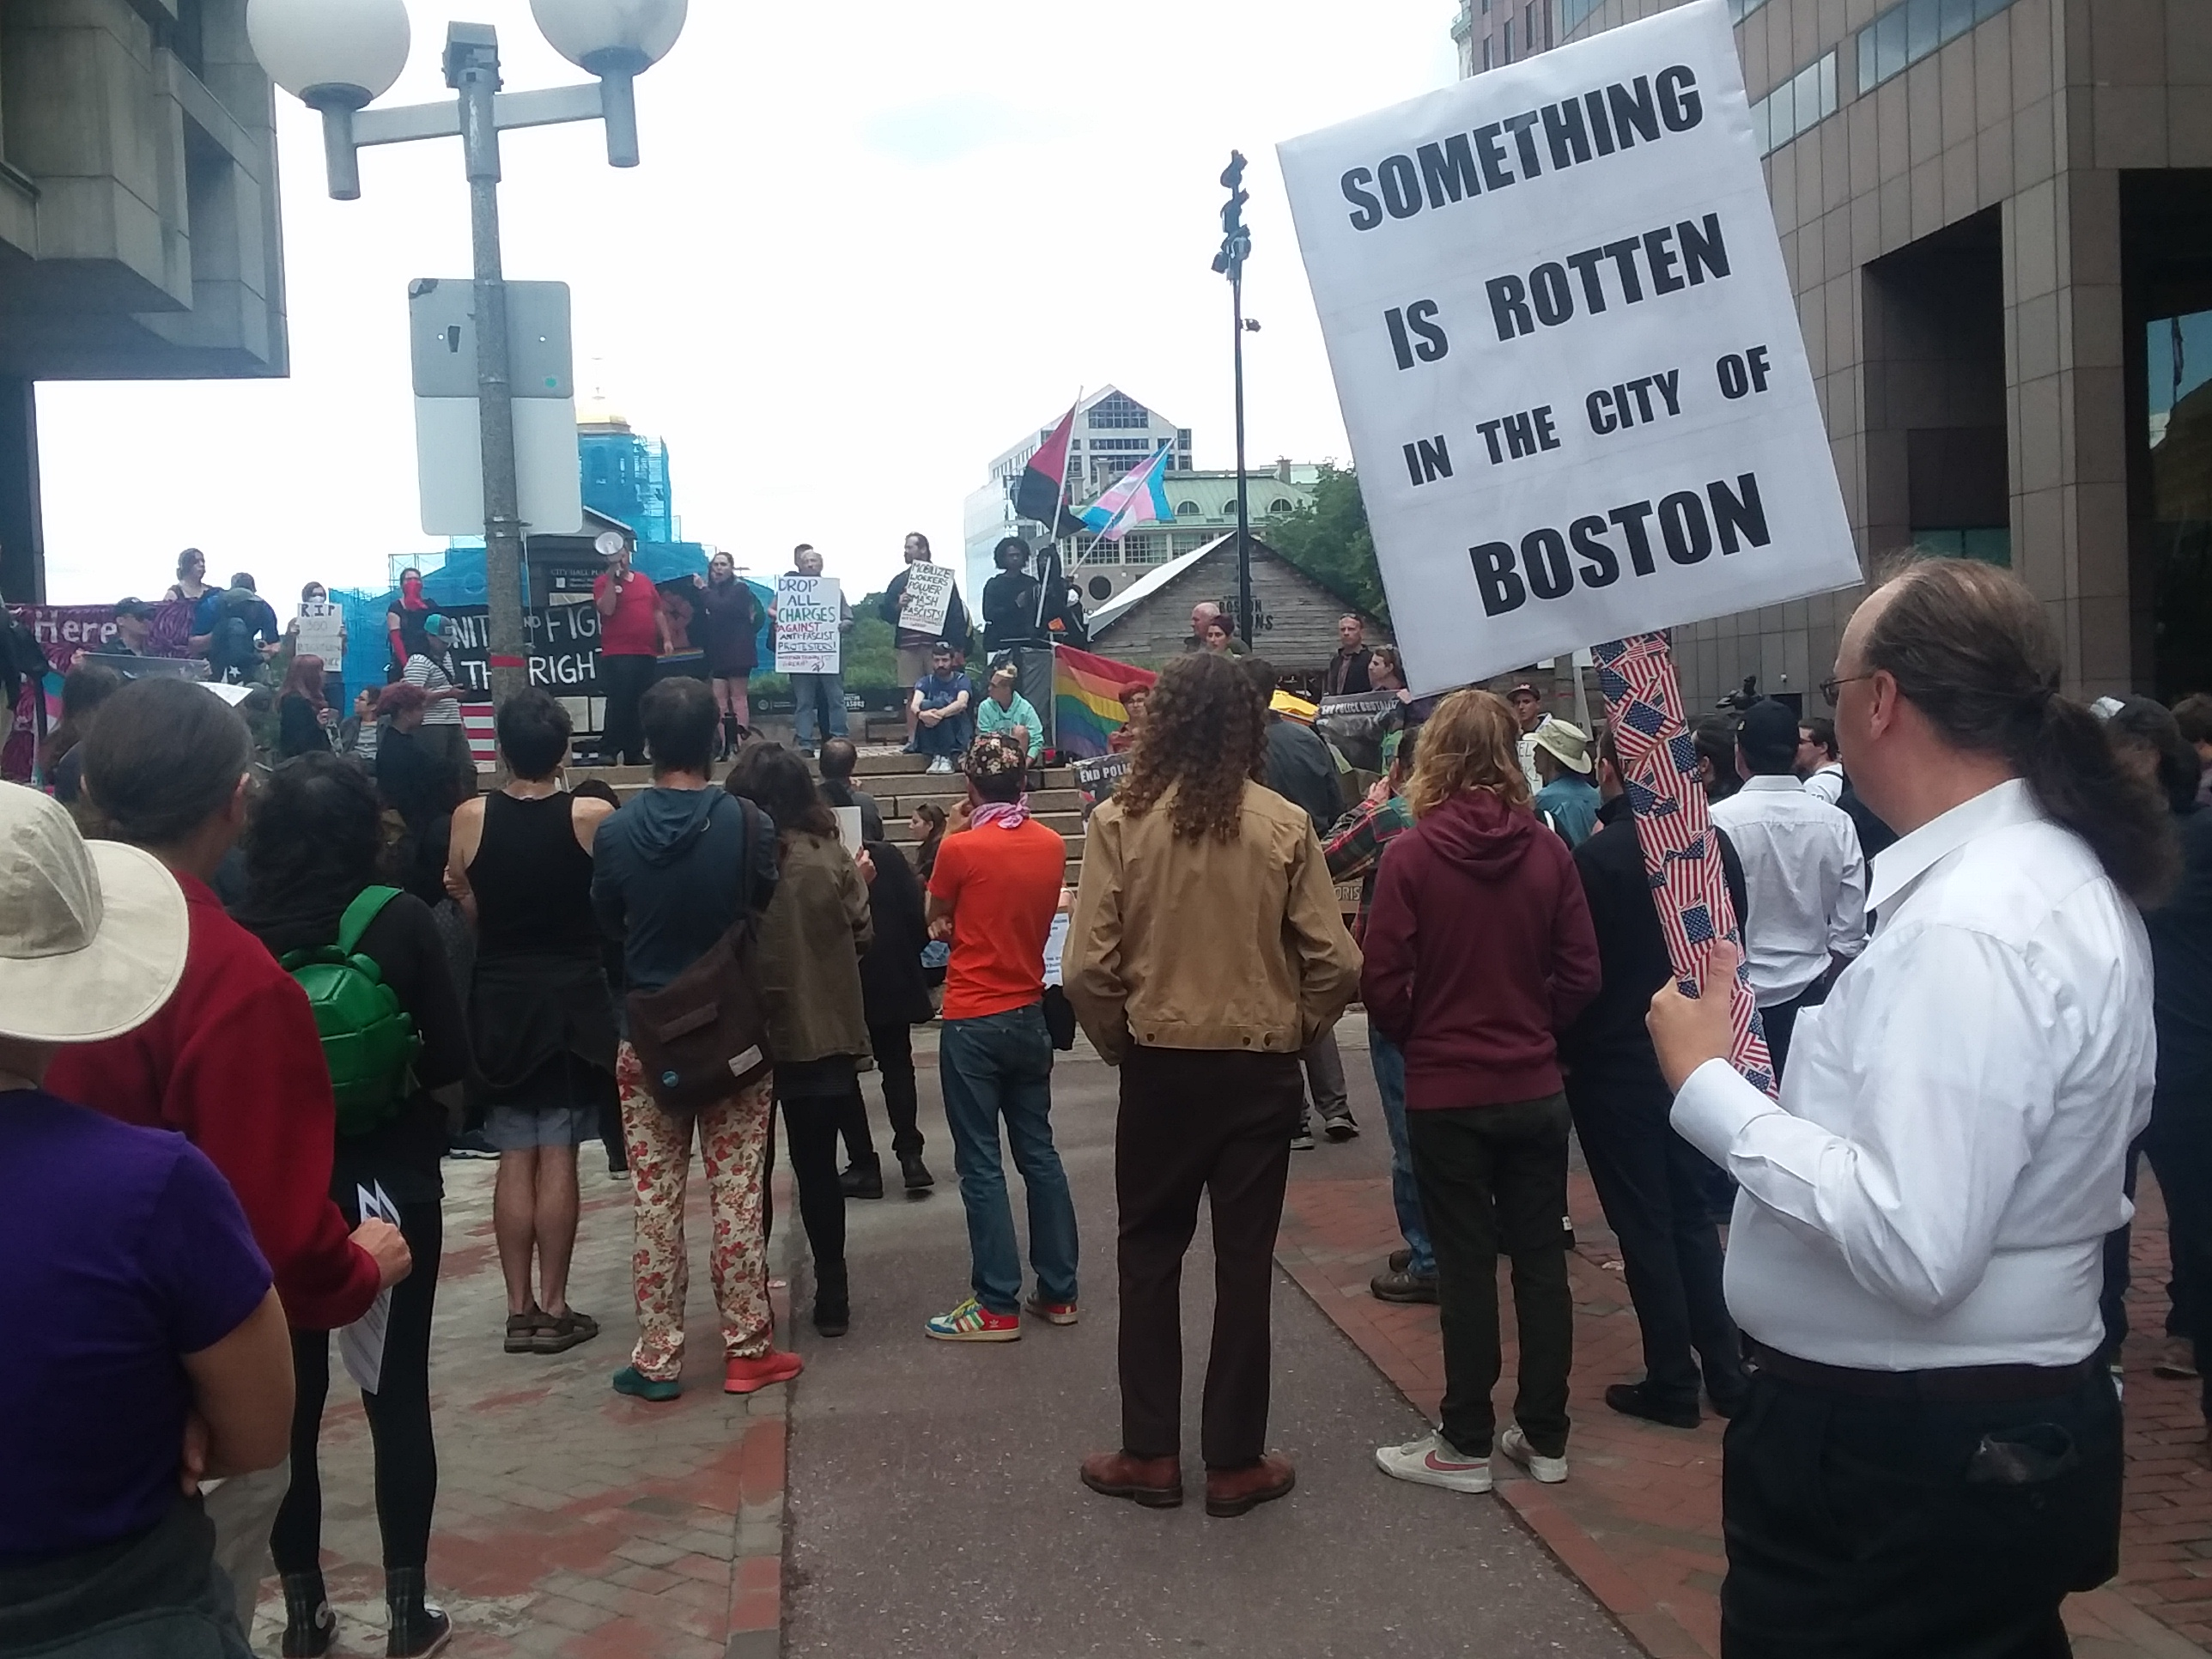 """""""something is rotten in the city of boston"""" protest sign"""